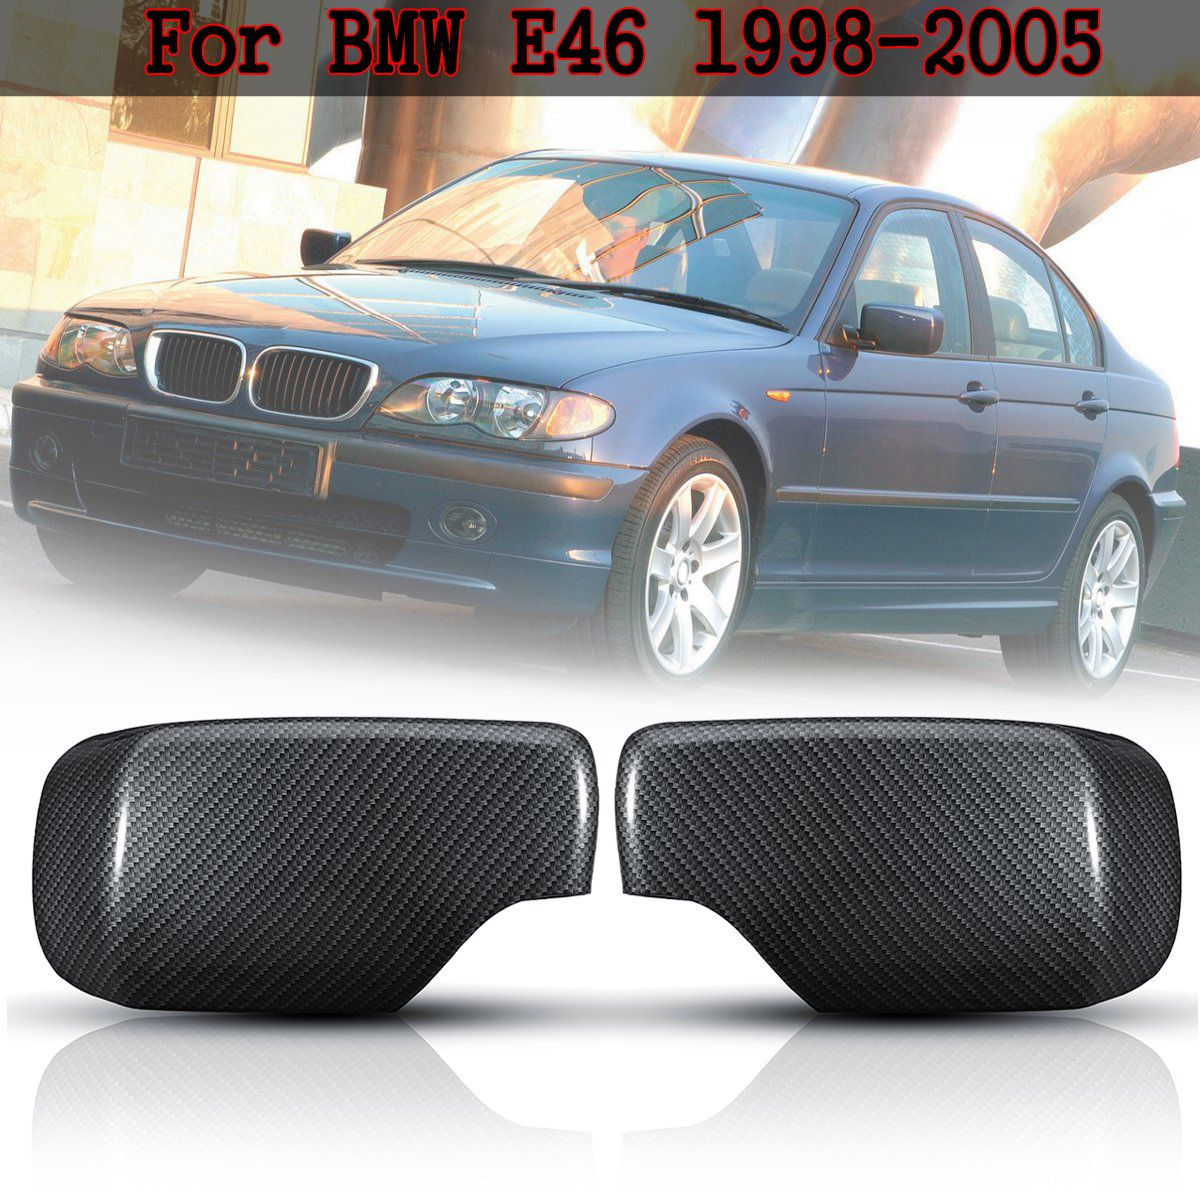 For BMW E46 1998 2005 1 Pair Car Styling Carbon Fiber Wing Door Rearview Heated Mirrors Cap Mirror Covers